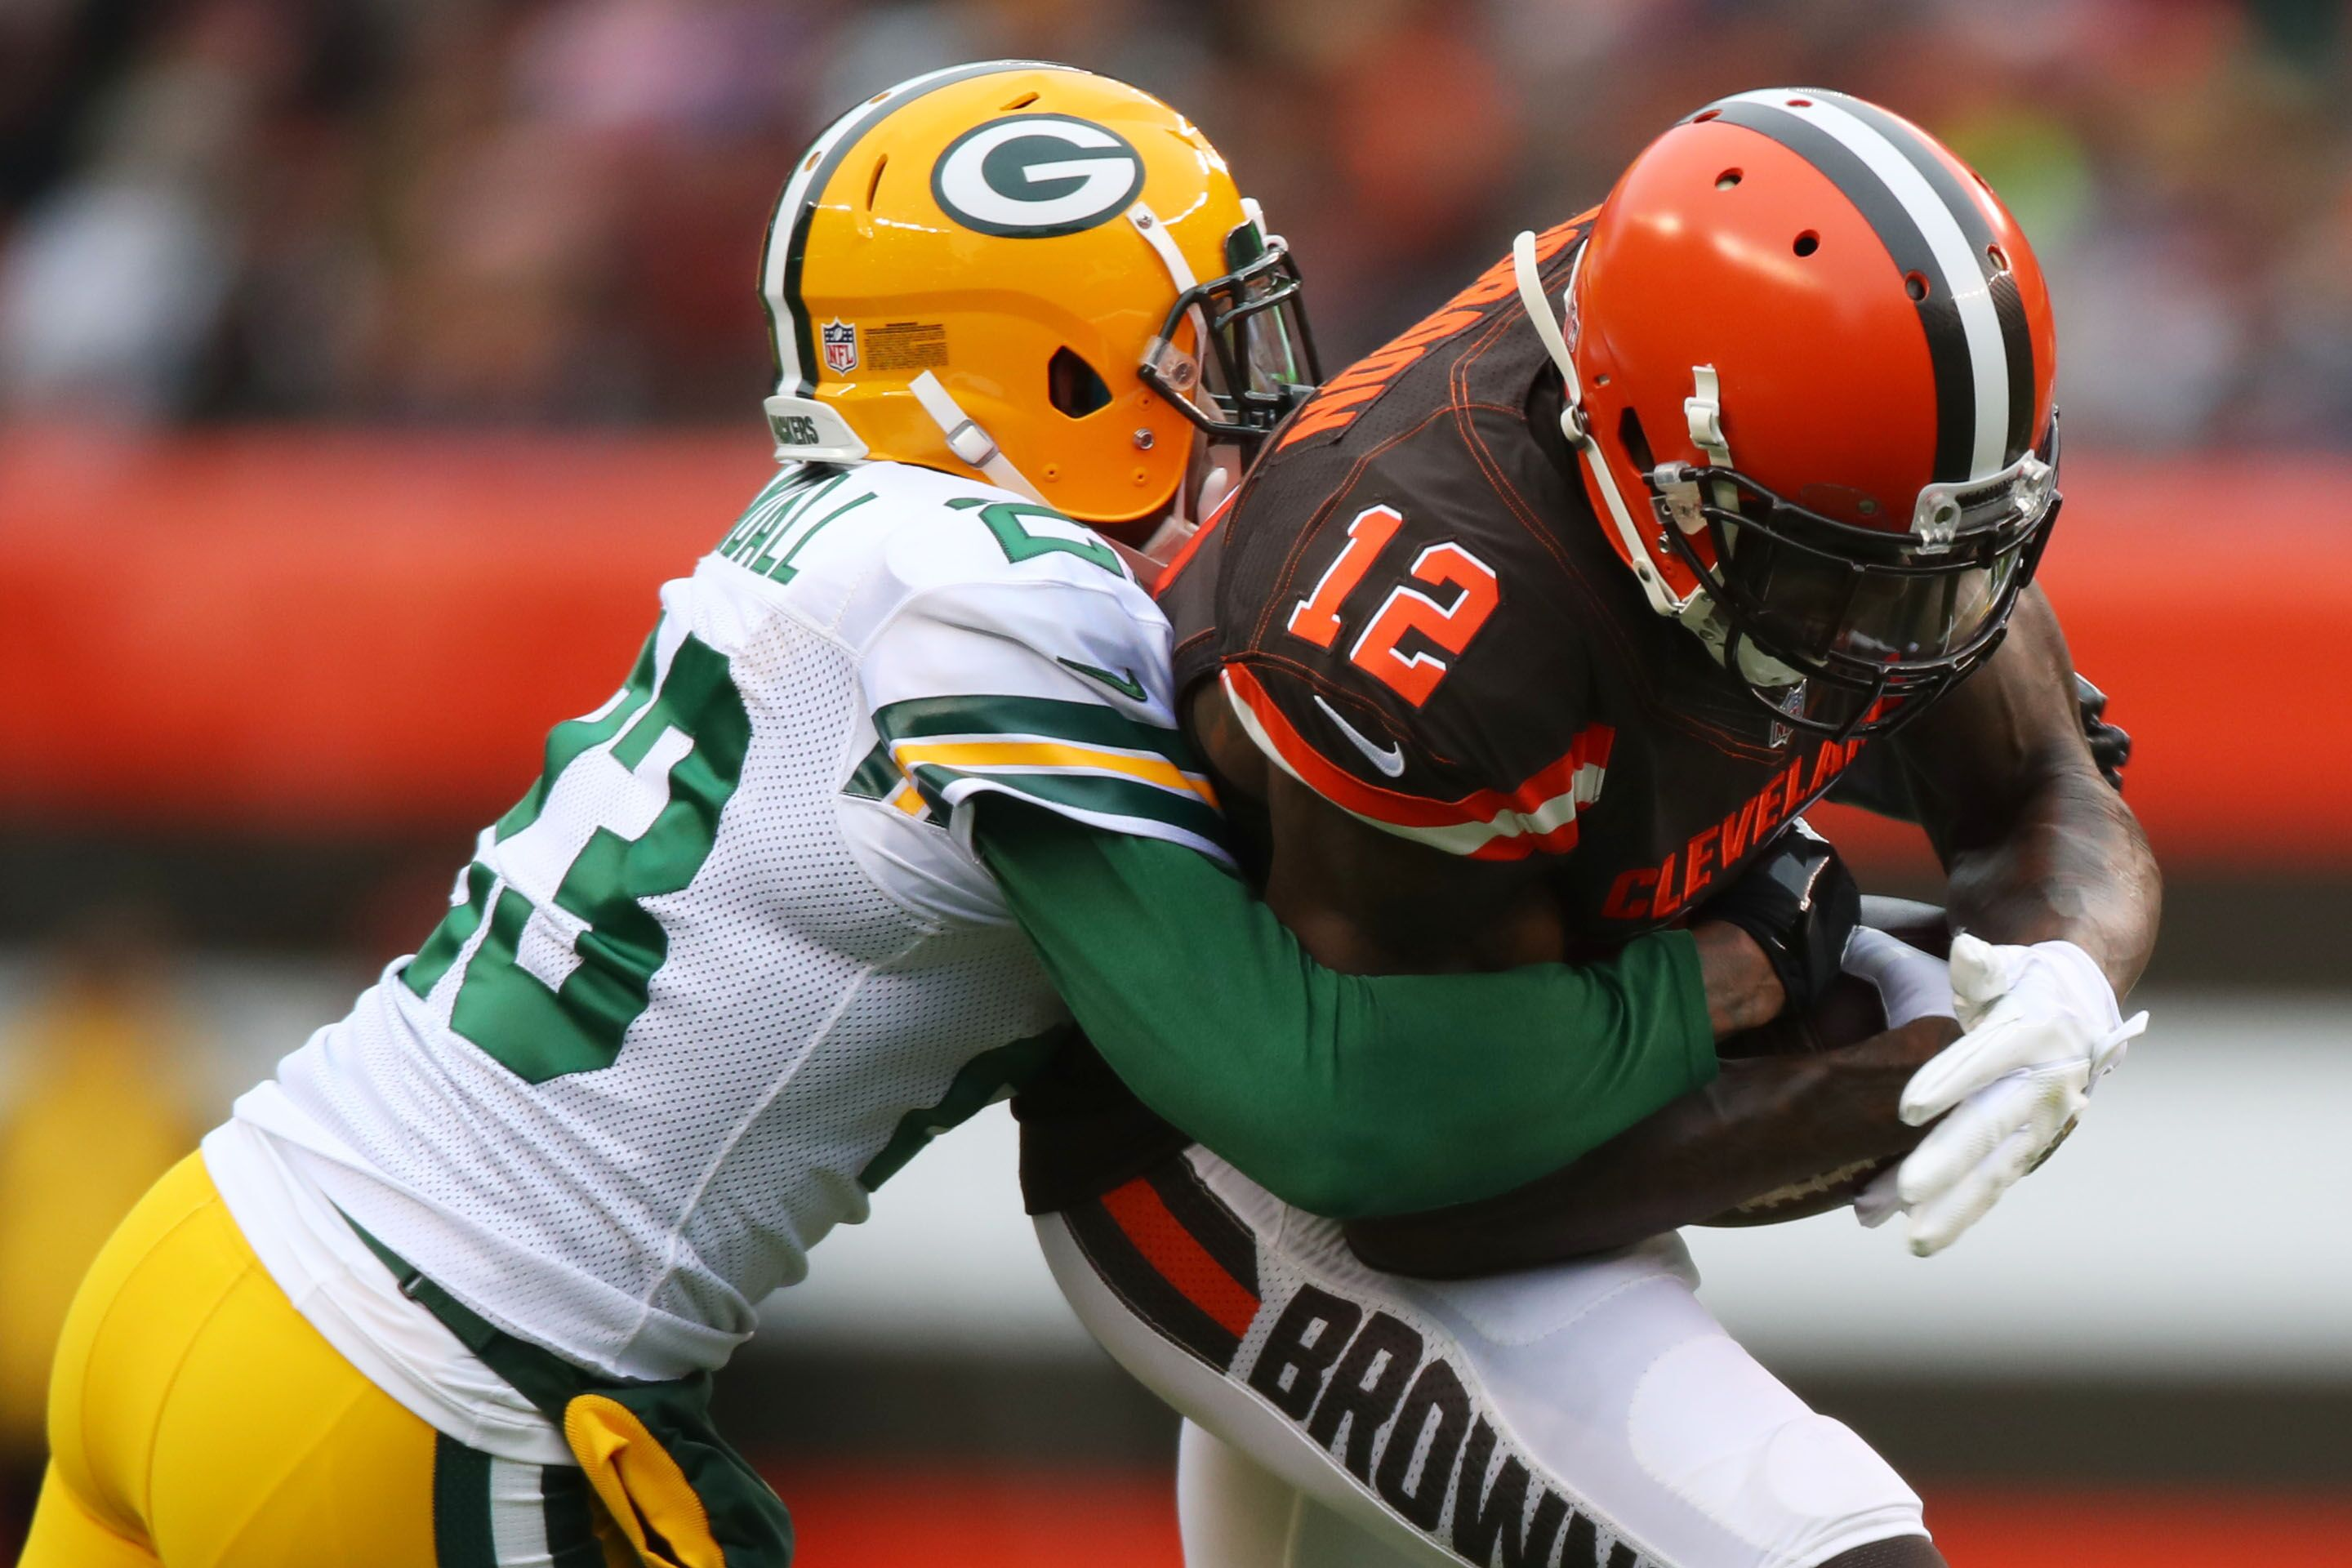 889631194-green-bay-packers-v-cleveland-browns.jpg